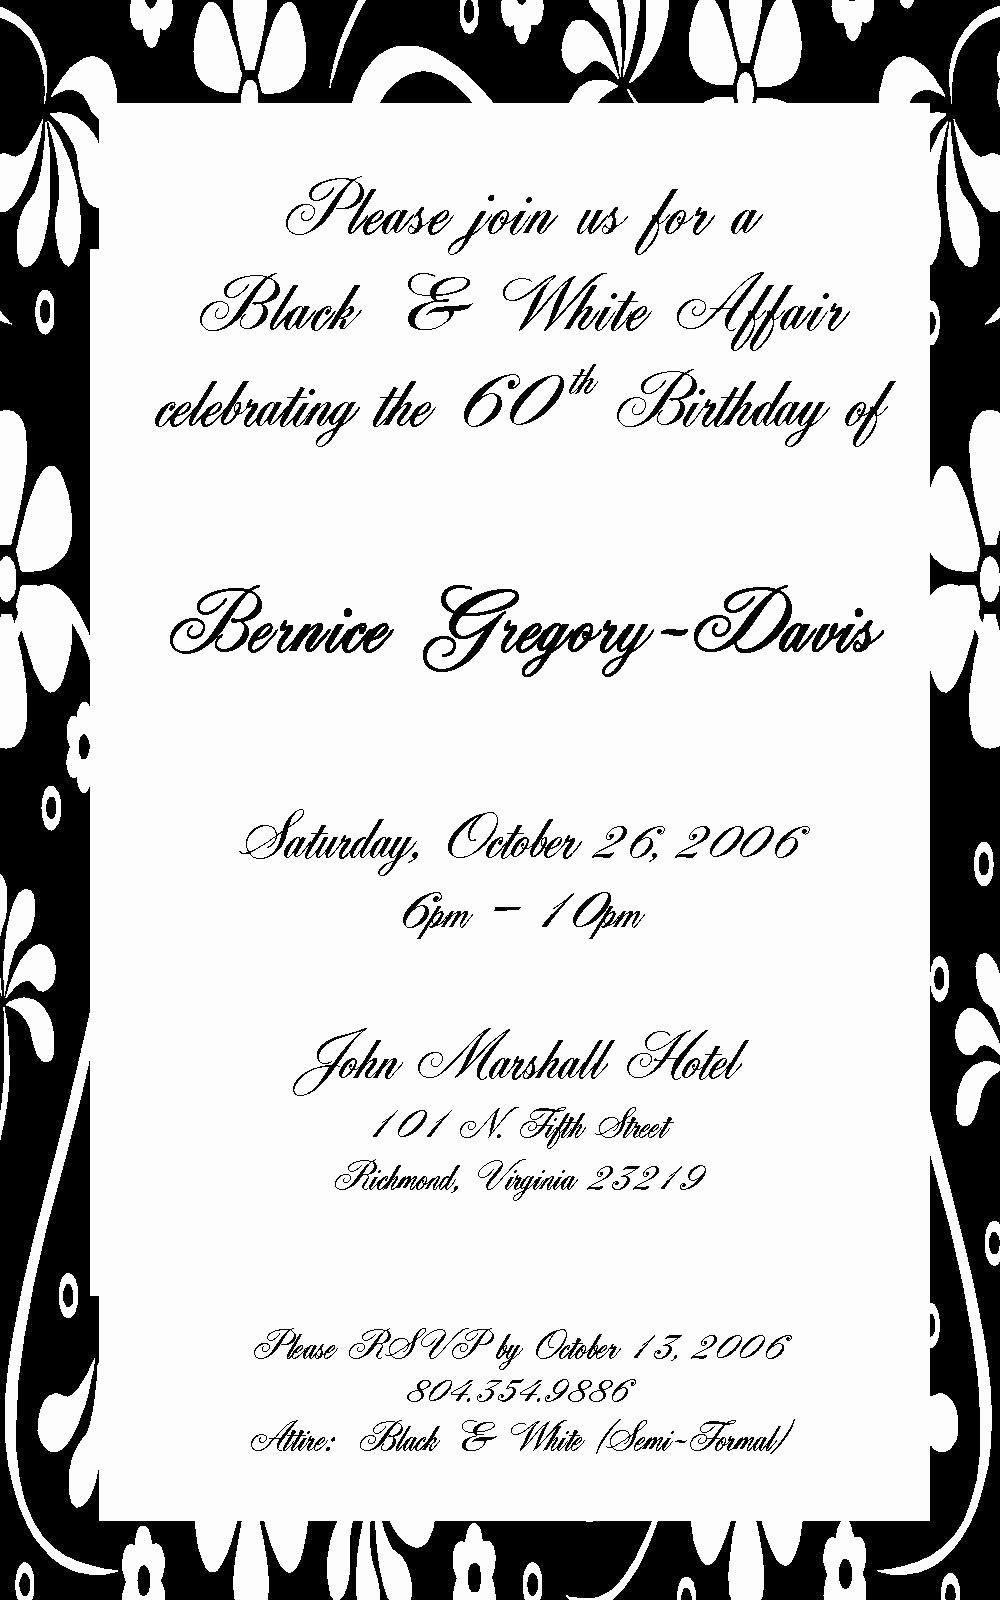 Invitation format for Birthday Party New Birthday Invitation Sample Party Invitation